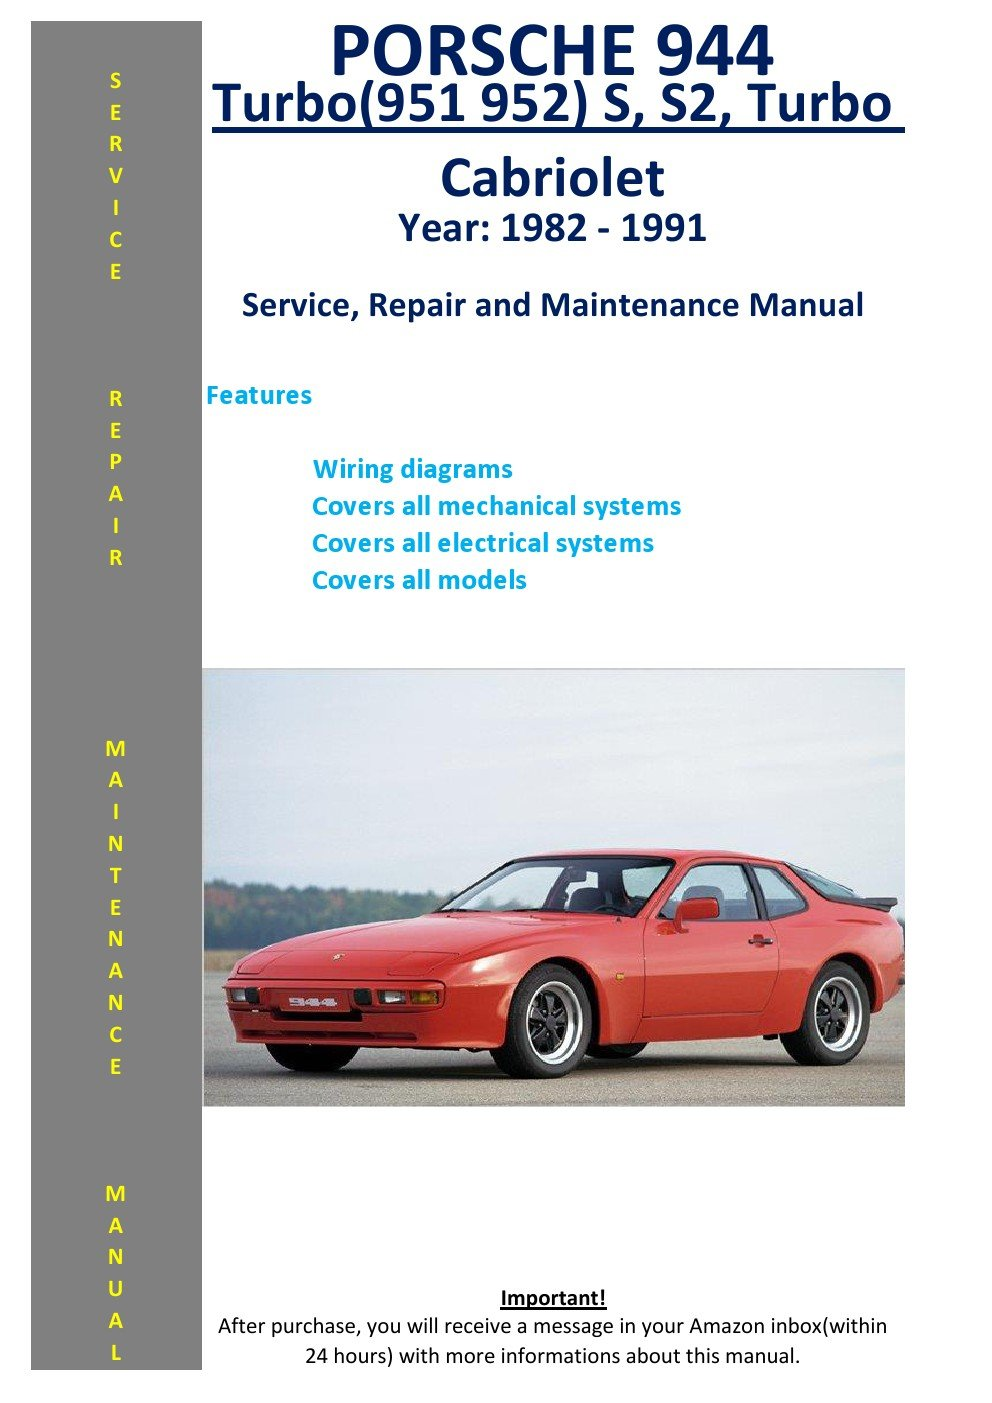 Porsche 944 , Turbo (951 952), S, S2, Cabriolet From 1982 - 1991 Service Repair Maintenance Manual Map – 2005